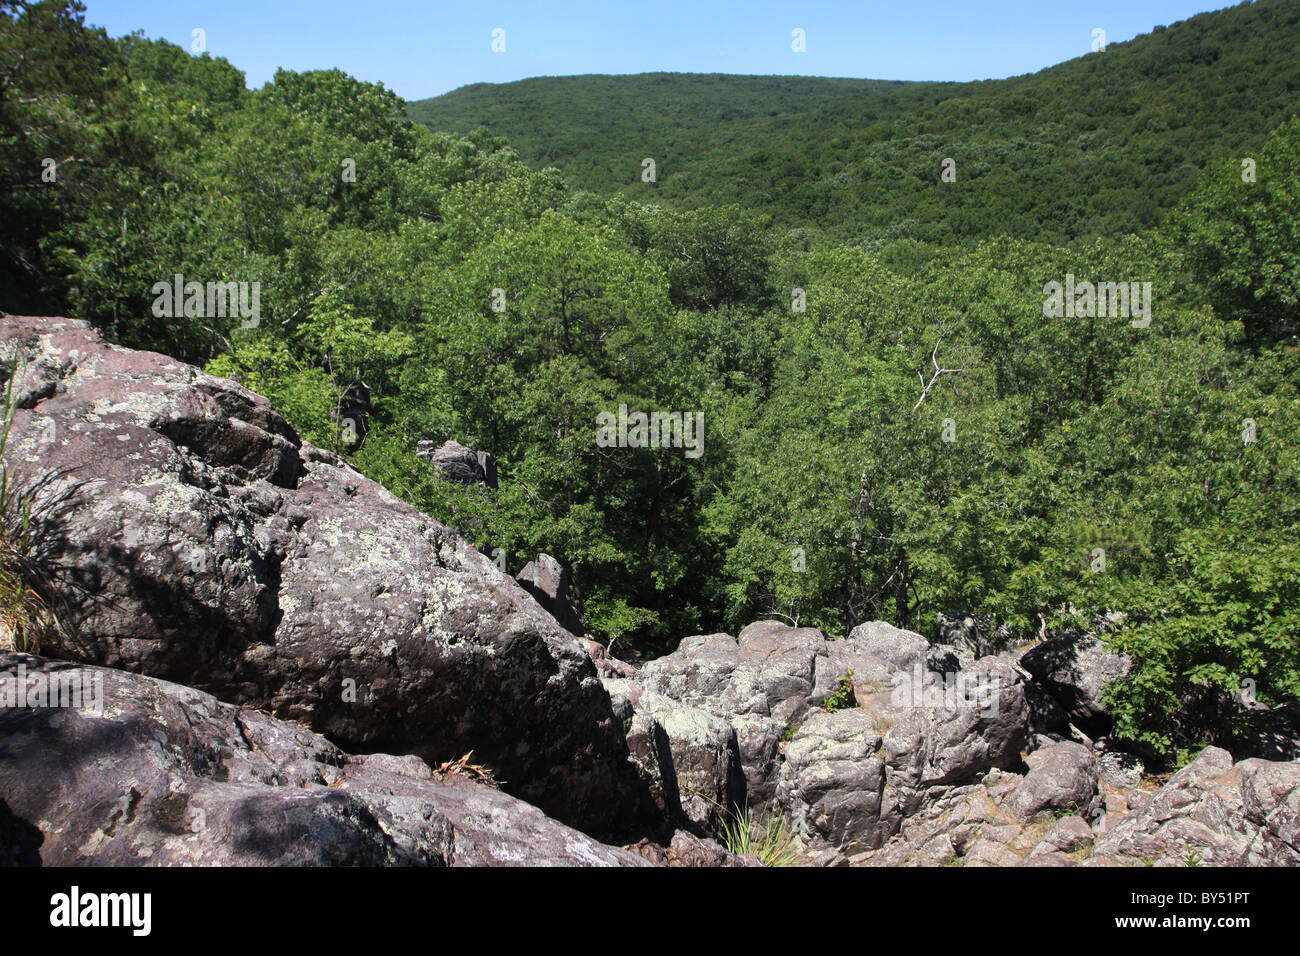 Ozark Trail Taum Sauk Mountain State Park Missouri rhyolite St. Francois Mountains volcanic rock formations - Stock Image